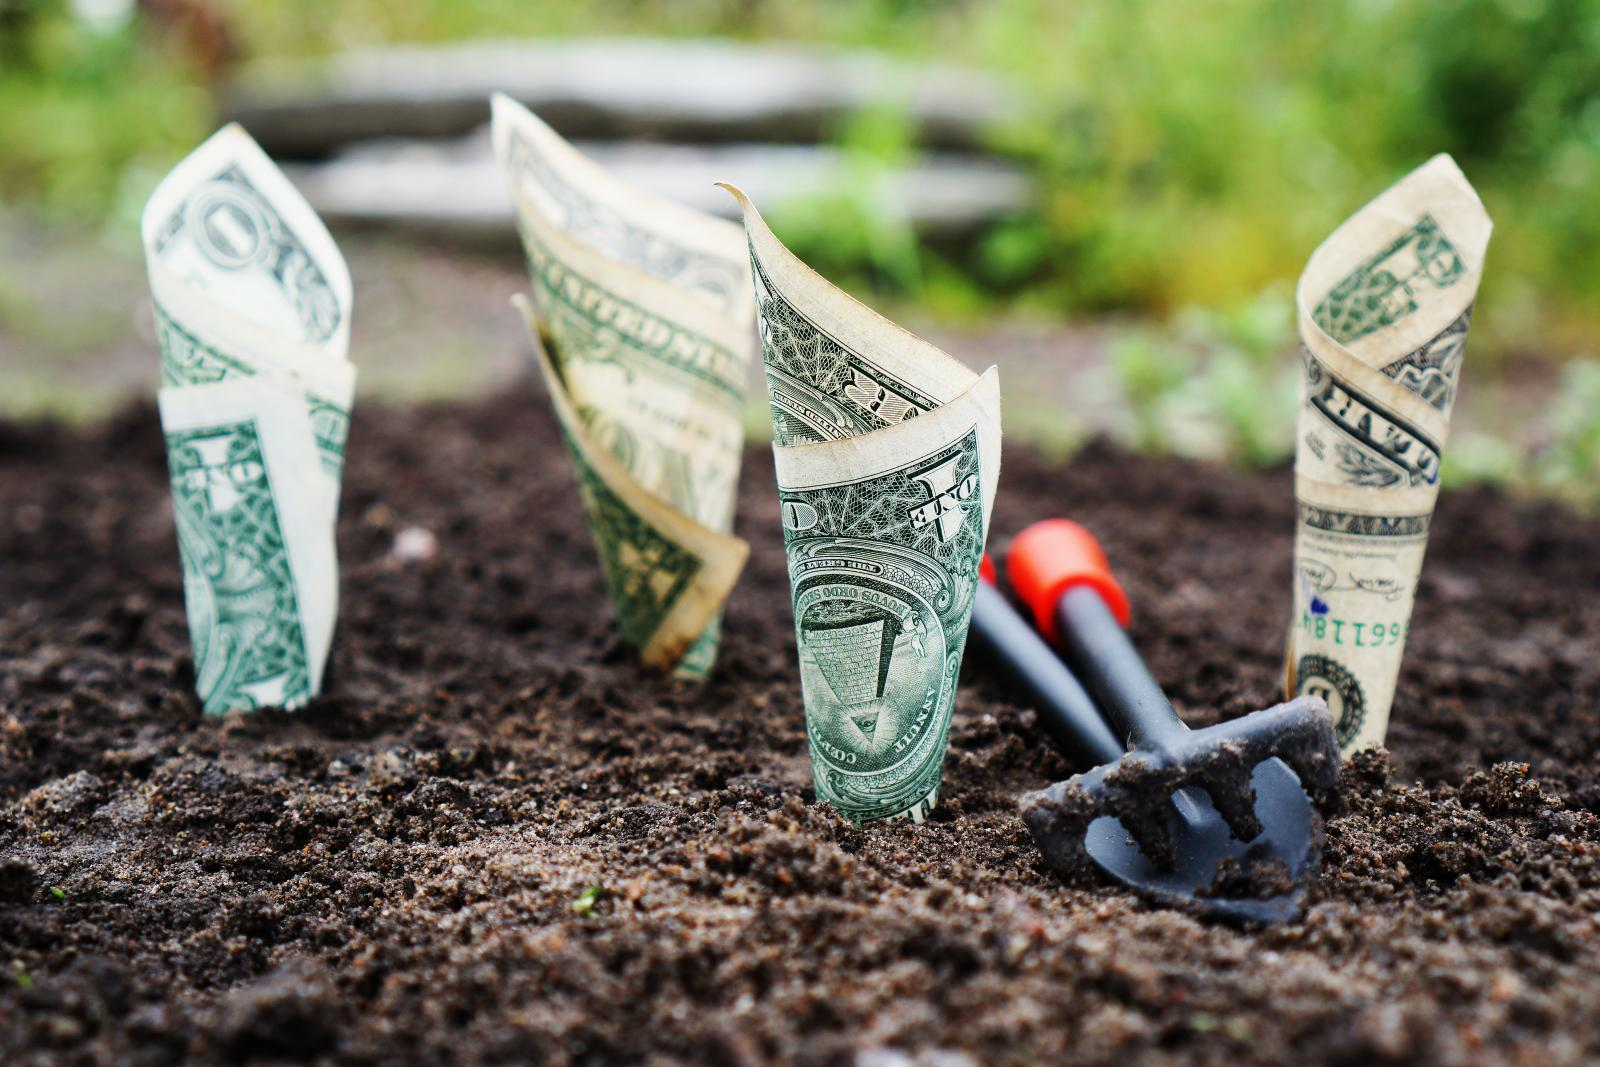 Bank notes growing in a field. Photo credit: Pixabay